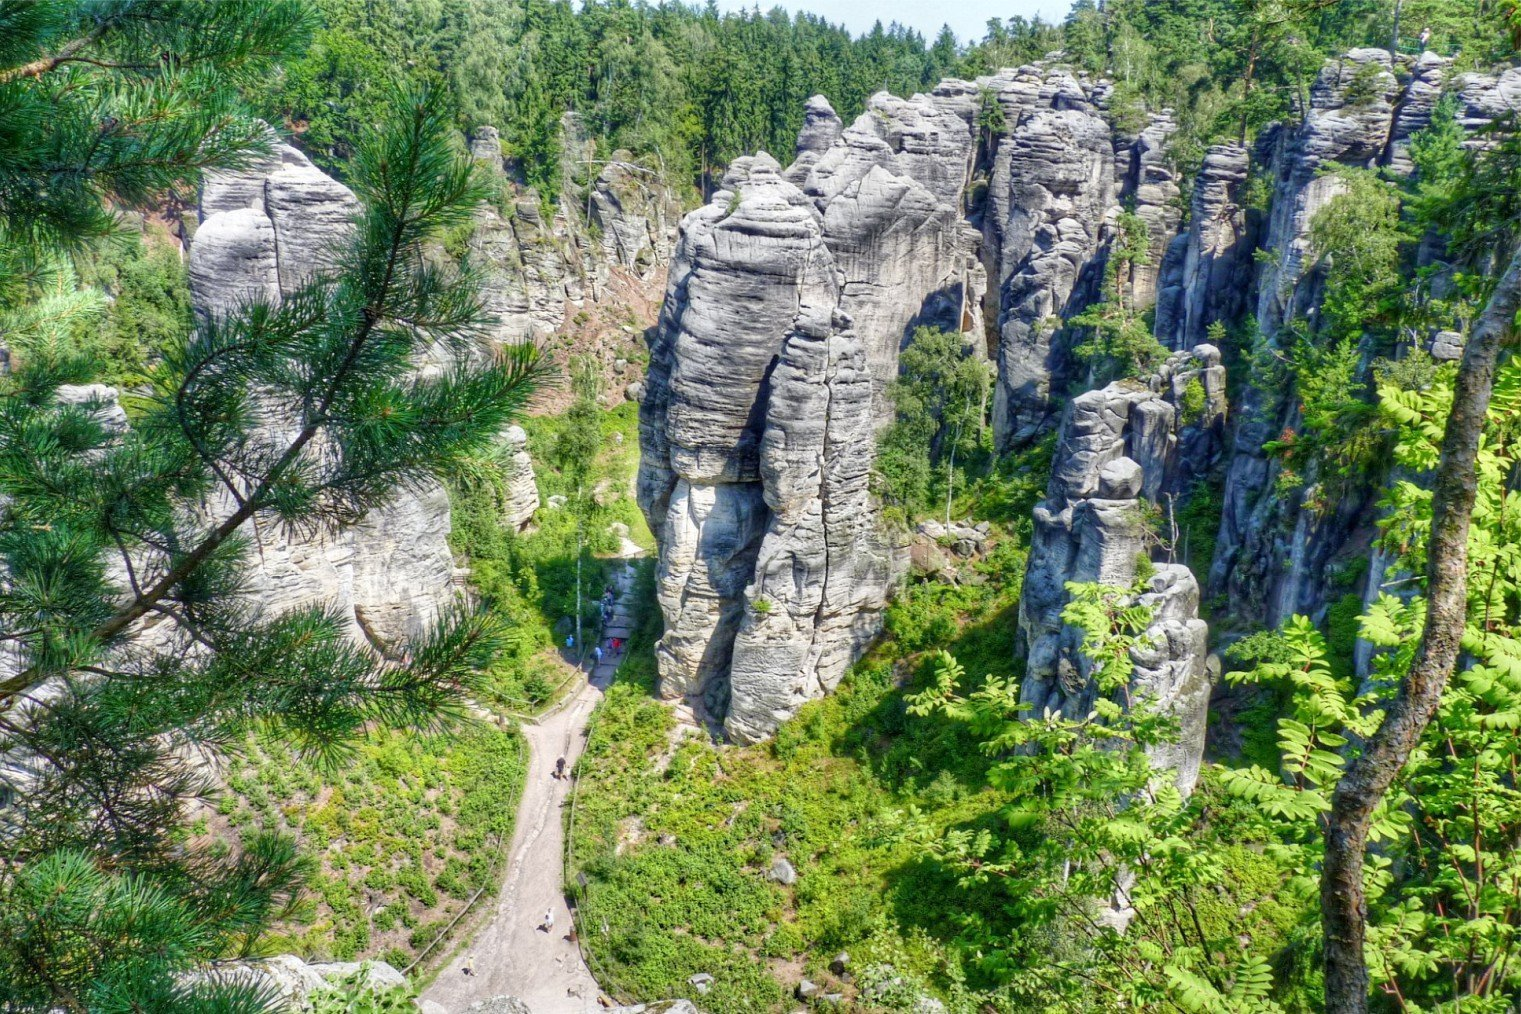 Праховские скалы, Чехия. Prachov Rocks, Czech Republic